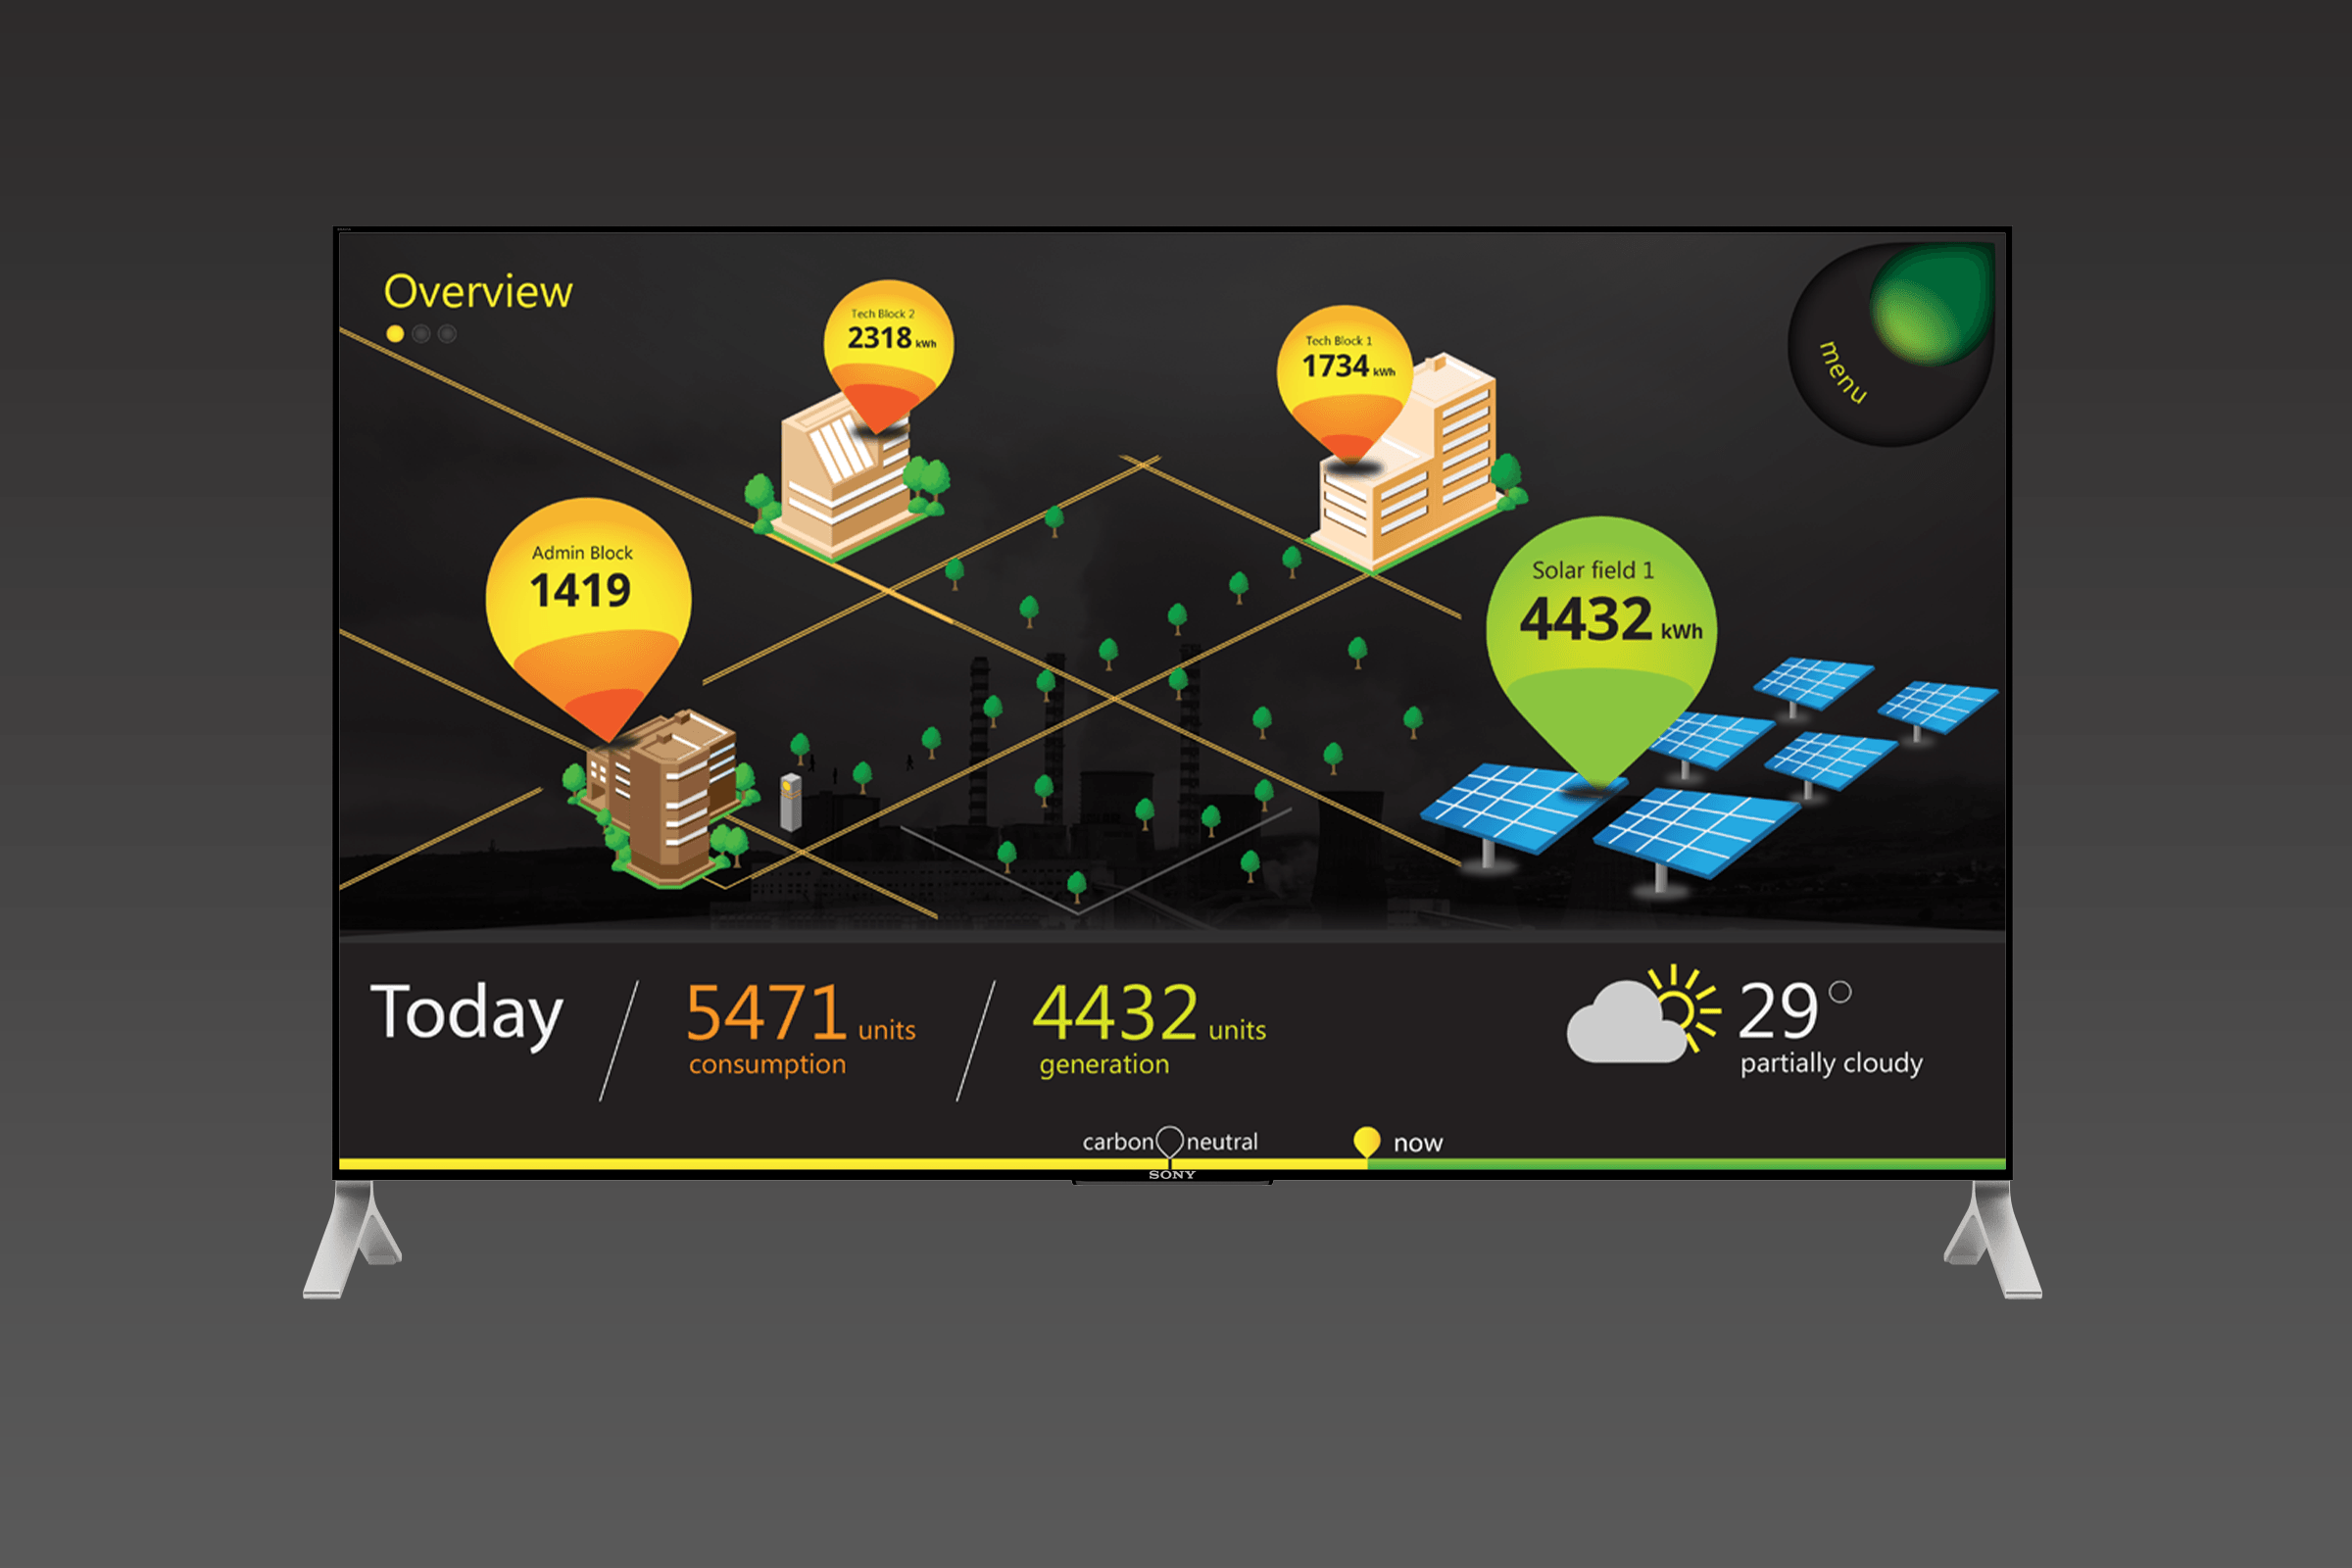 A concept showing the visualisation of power consumption and generation in an industrial establishment on a large touch interface